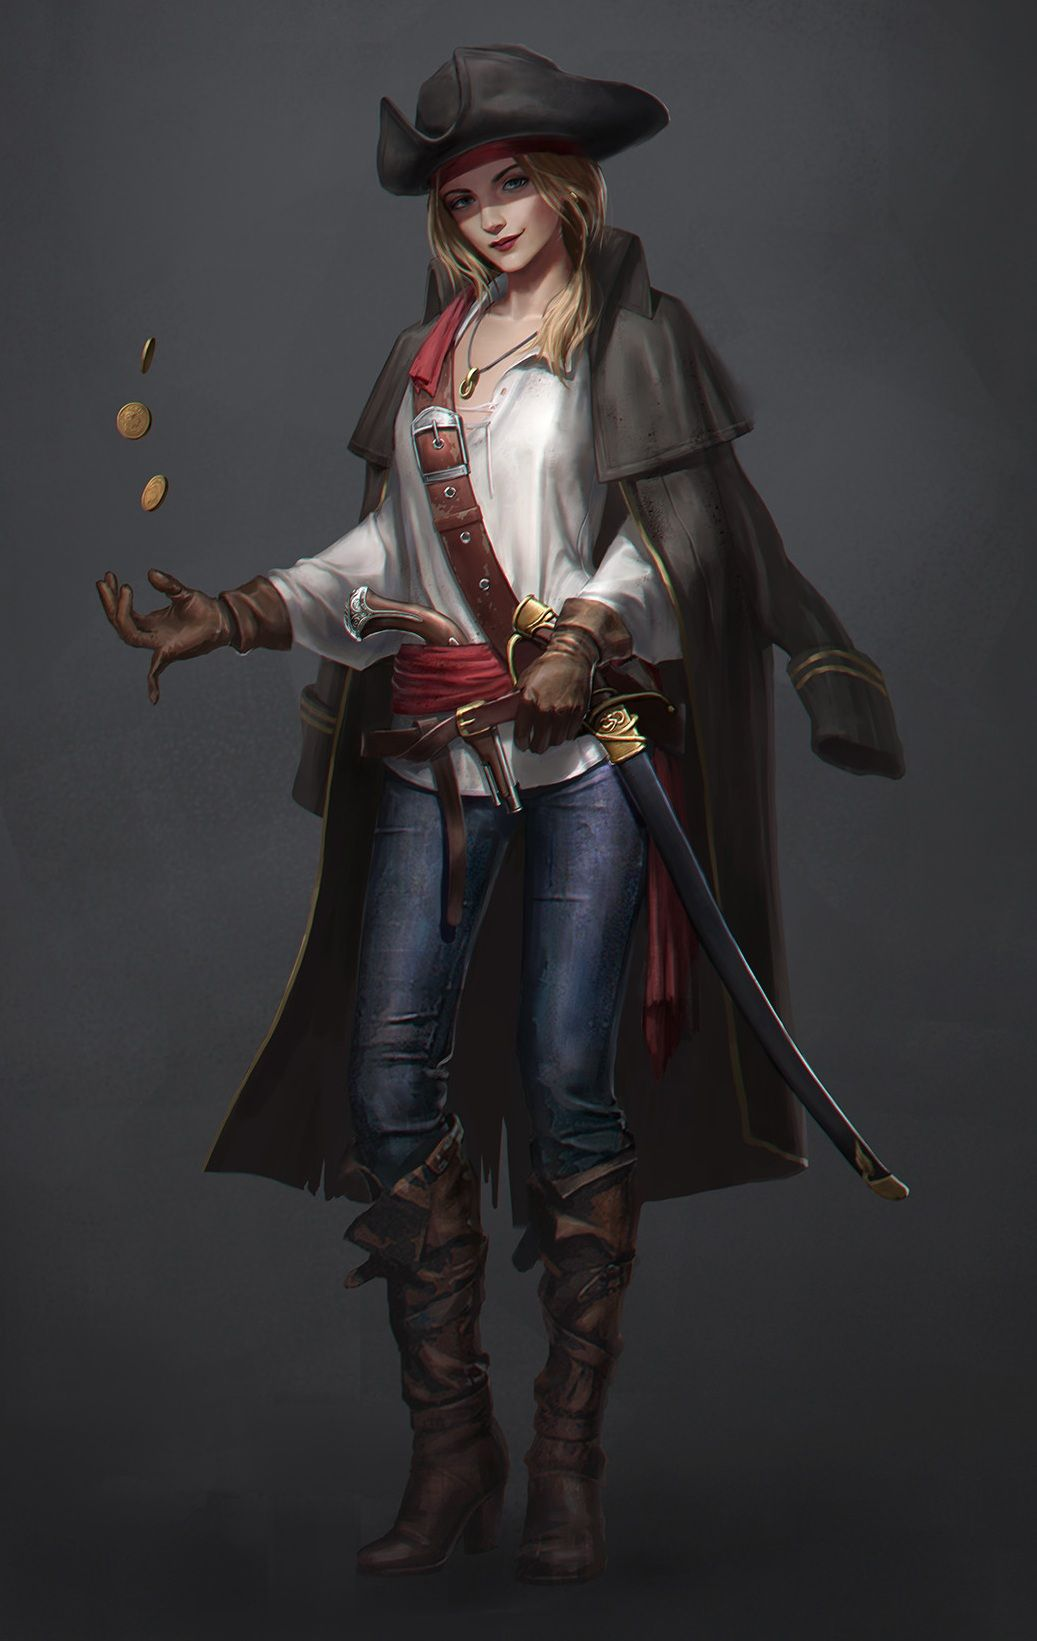 """we-are-rogue: """" Pirate, by Eryc TSang @we-are-pirate ... - photo#19"""